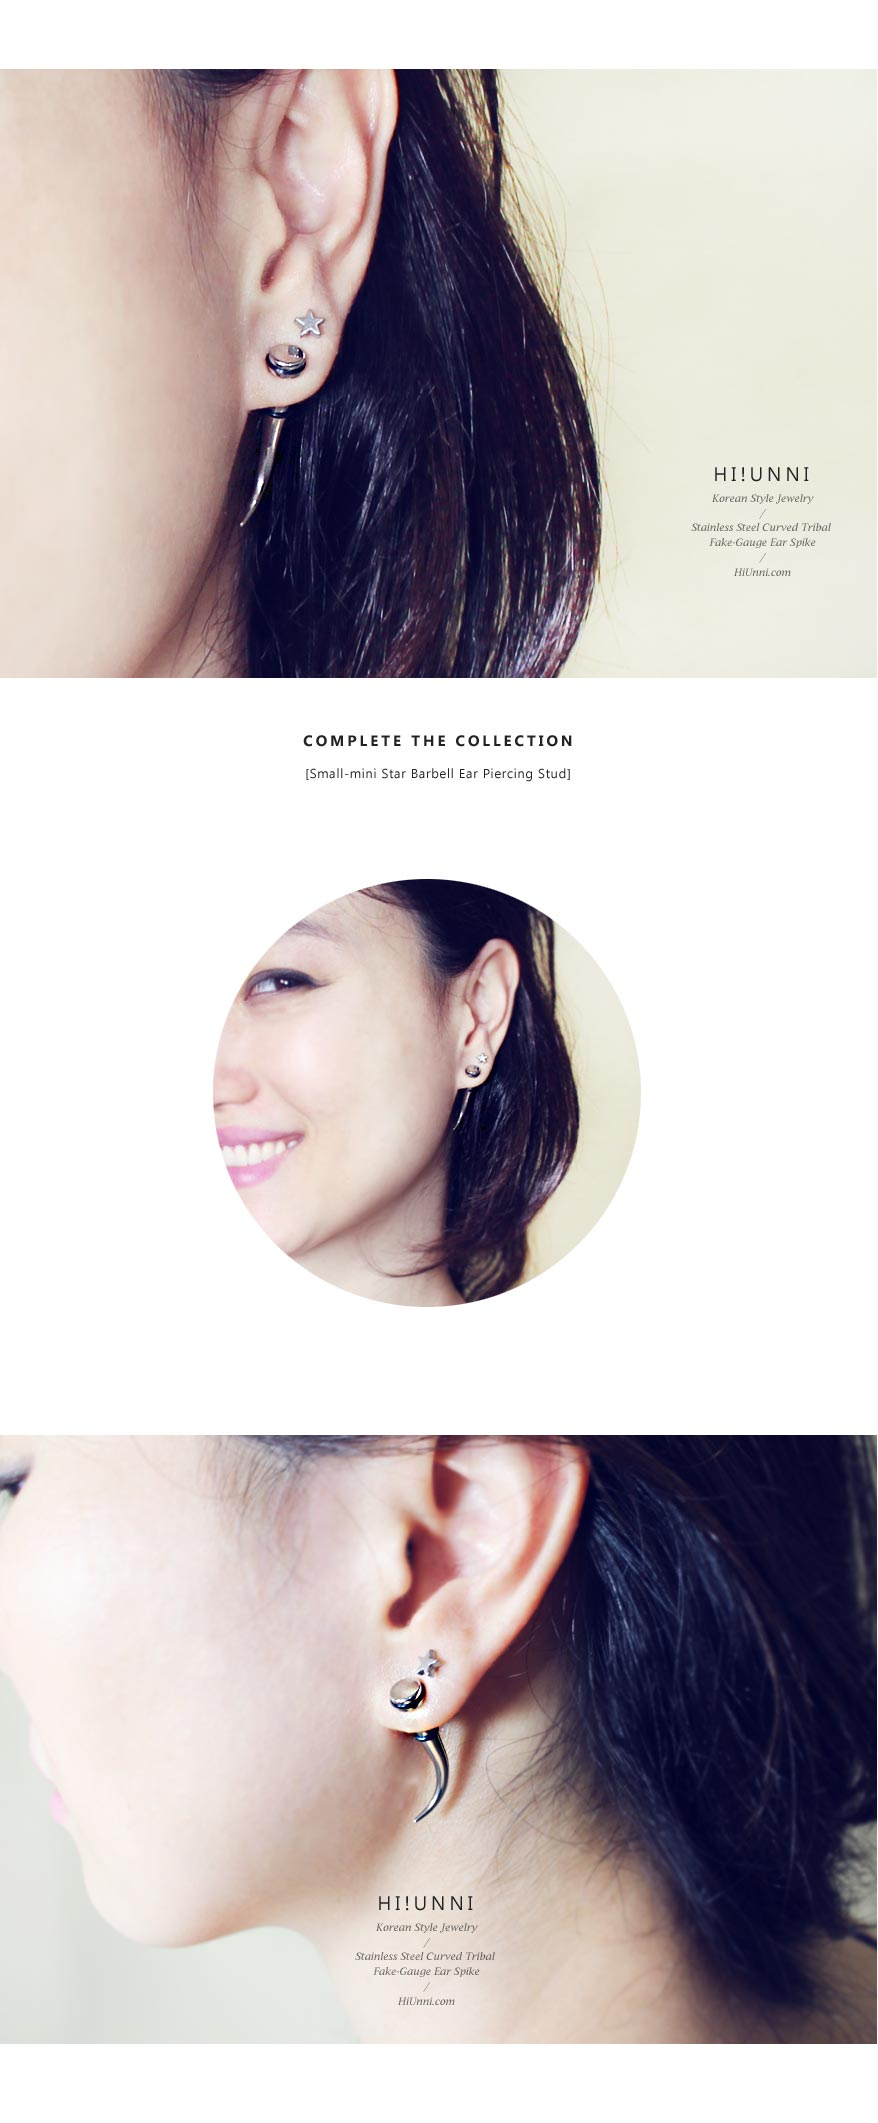 ear_studs_piercing_Cartilage_earrings_16g_316l_Surgical_Stainless_Steel_korean_asian_style_jewelry_curved_spike_fake_gauge_taper_5